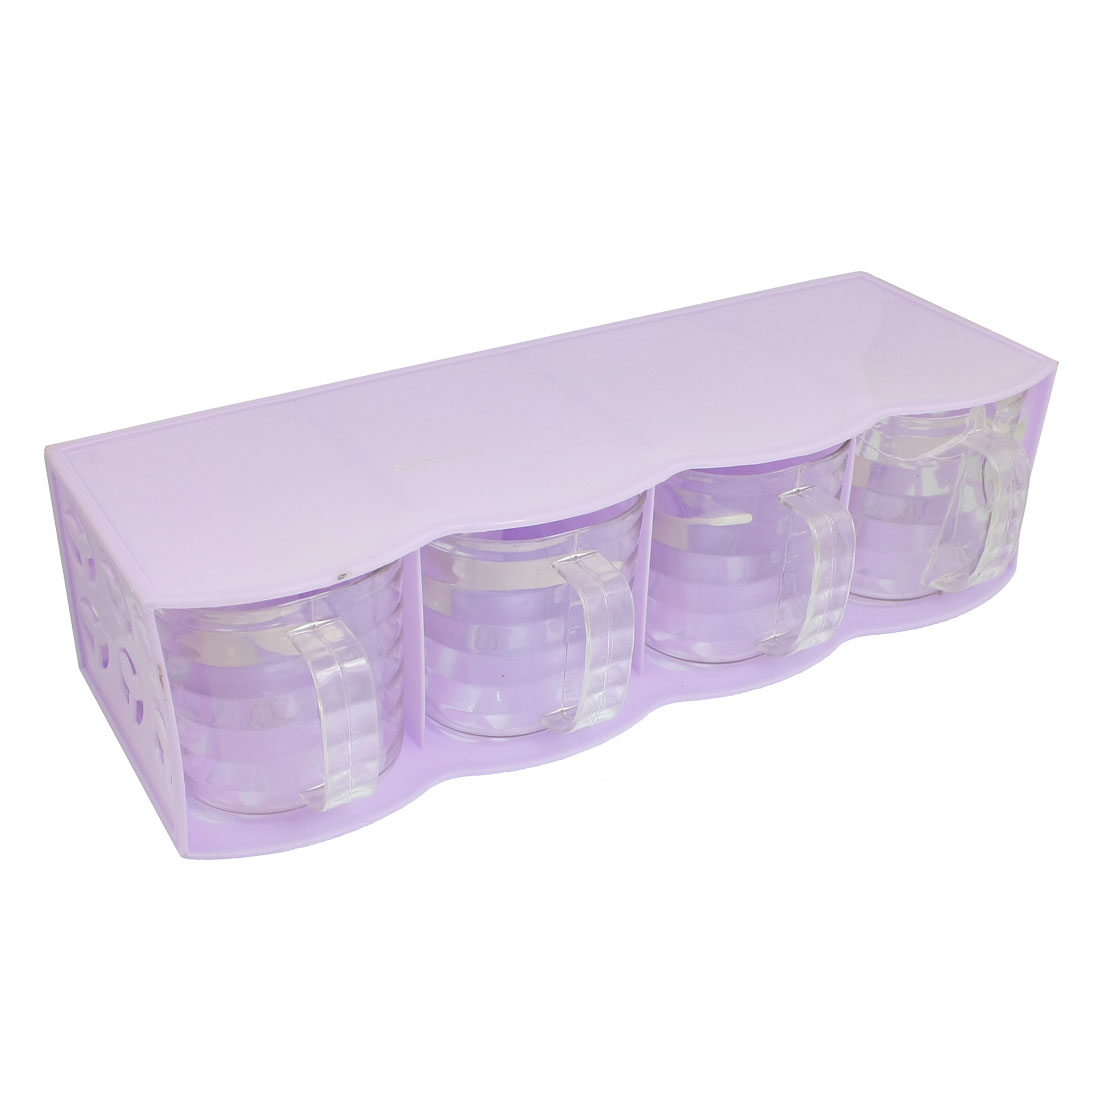 Bean Sprout Hole Spices Condiment Dispenser Container Box Lavender 4 in 1